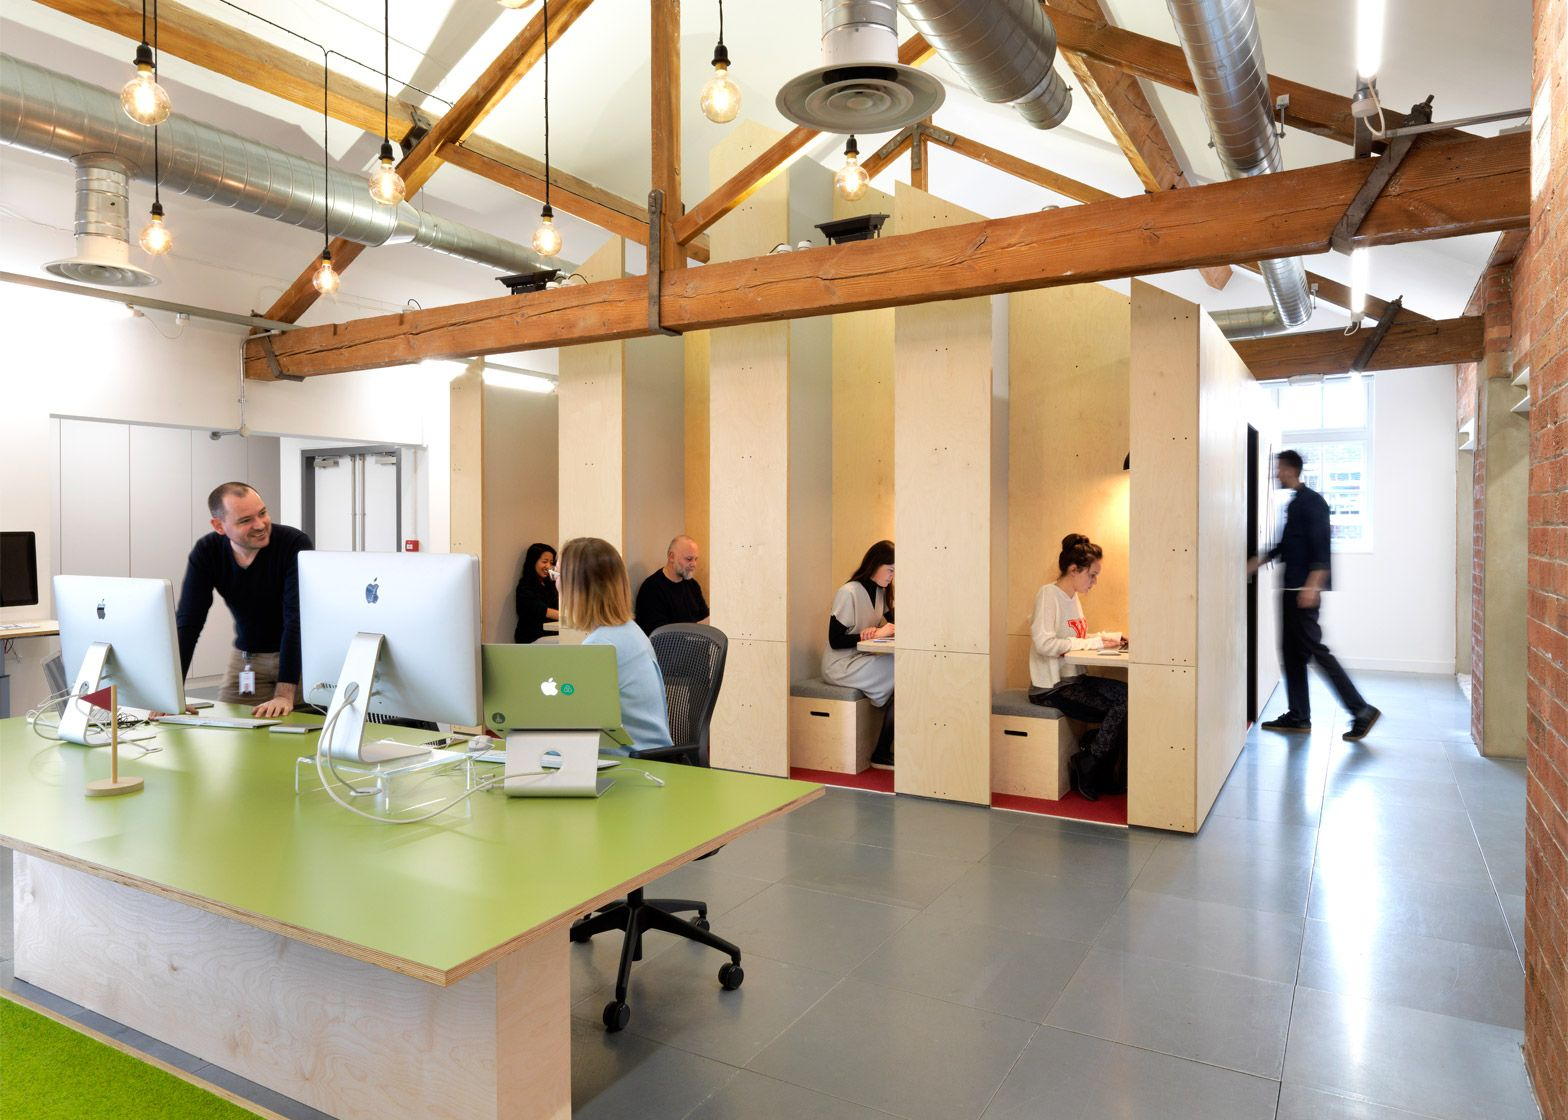 dublin office space. Airbnb Office Design San. Designs Adaptable Spaces For London, Sao Paulo And Dublin Space I